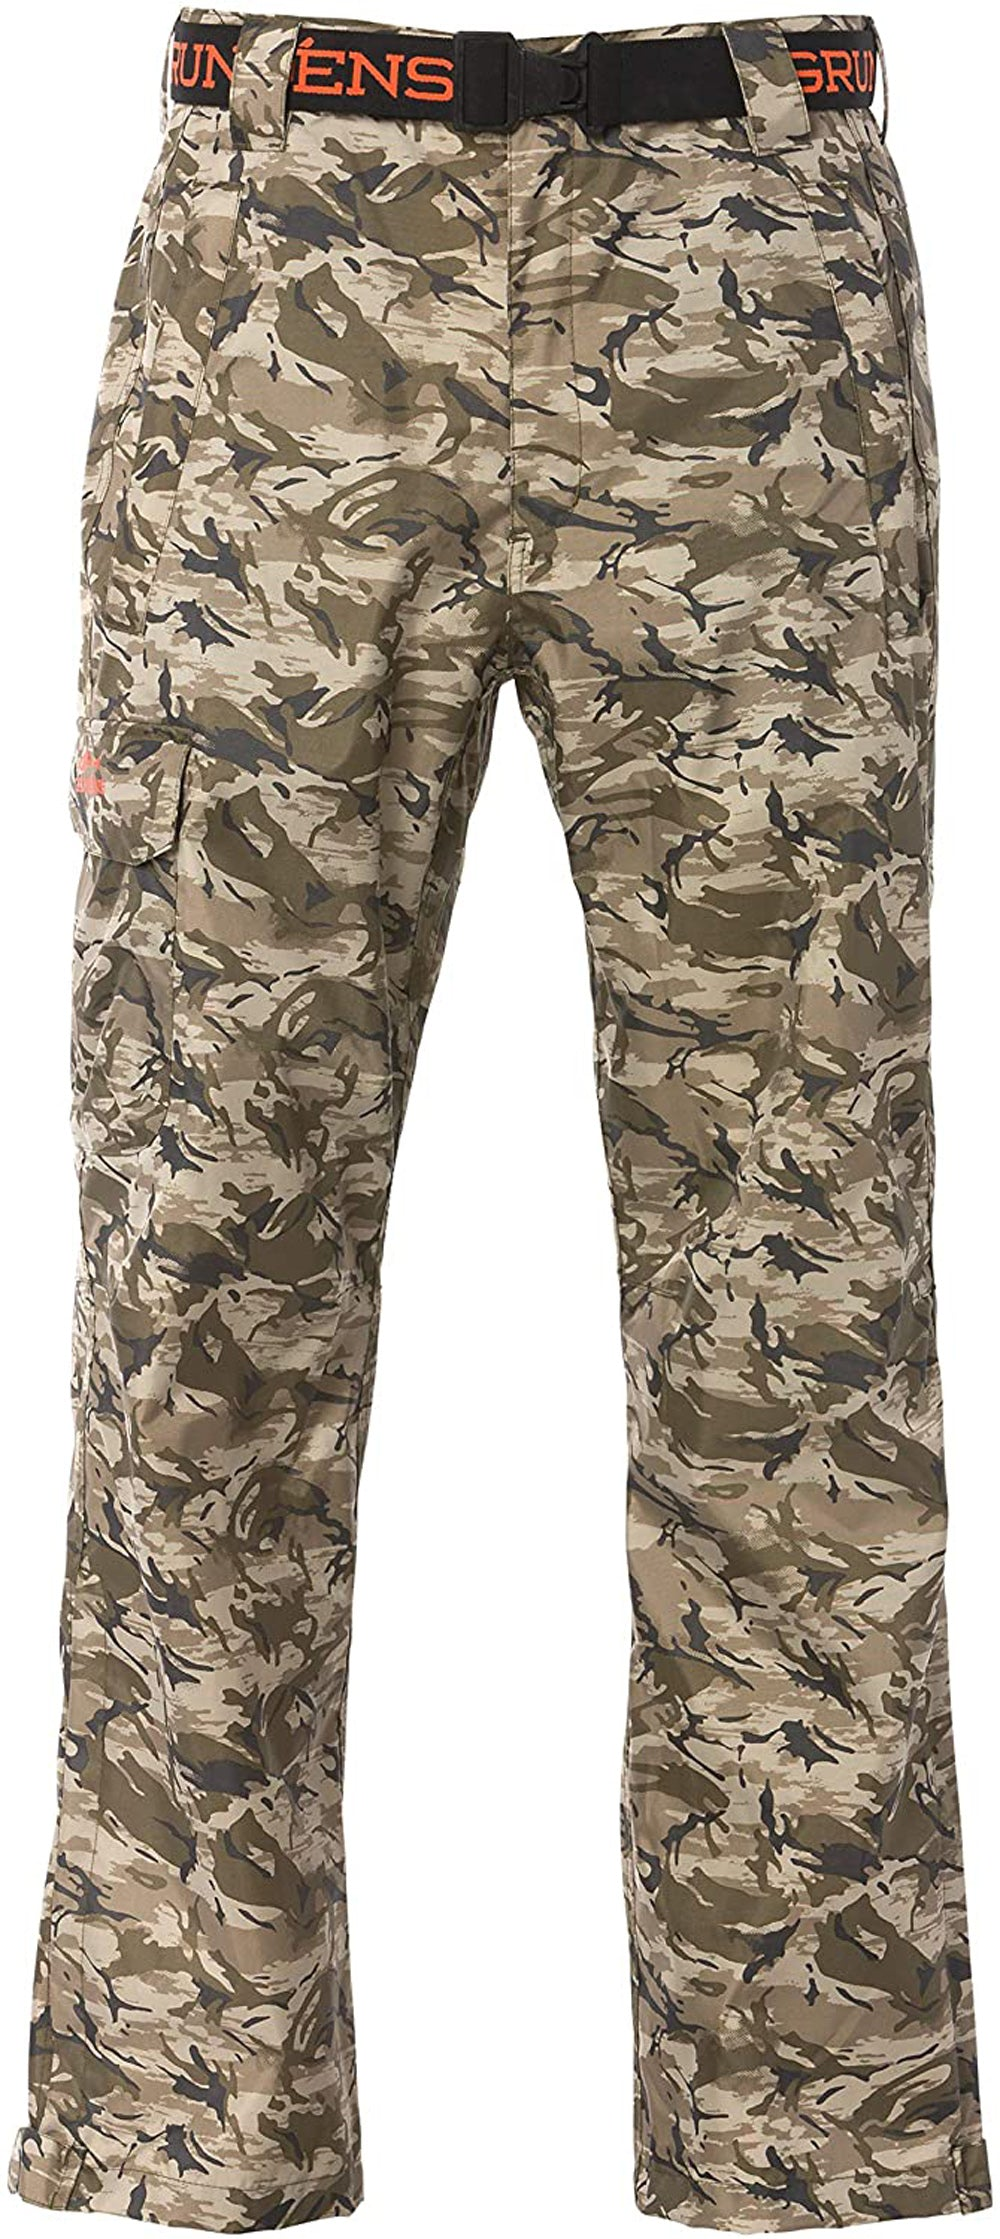 Weather Watch Pant in Refraction Camo Stone color from the front view